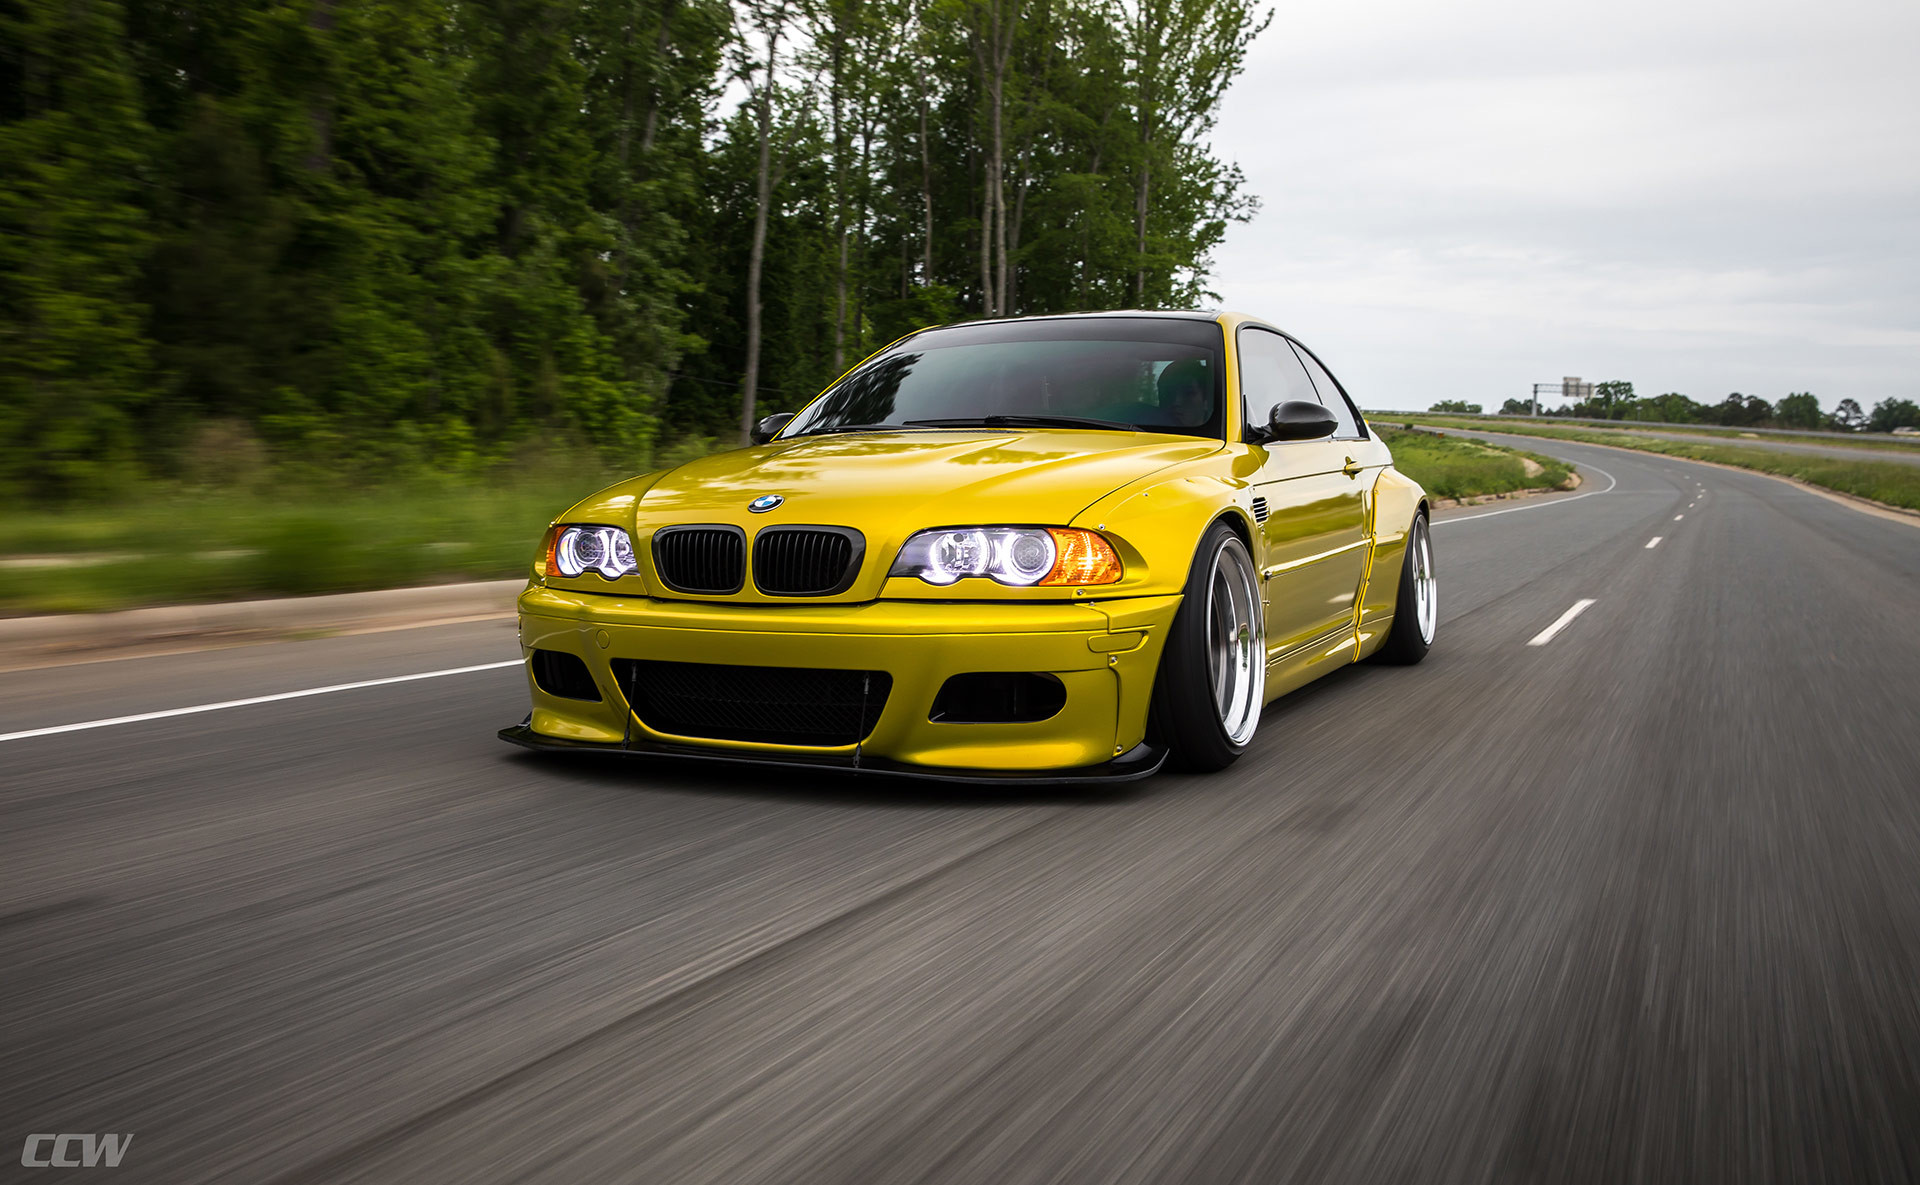 1920x1185 Phoenix Yellow BMW E46 M3 - CCW Classic Wheels Wallpaper